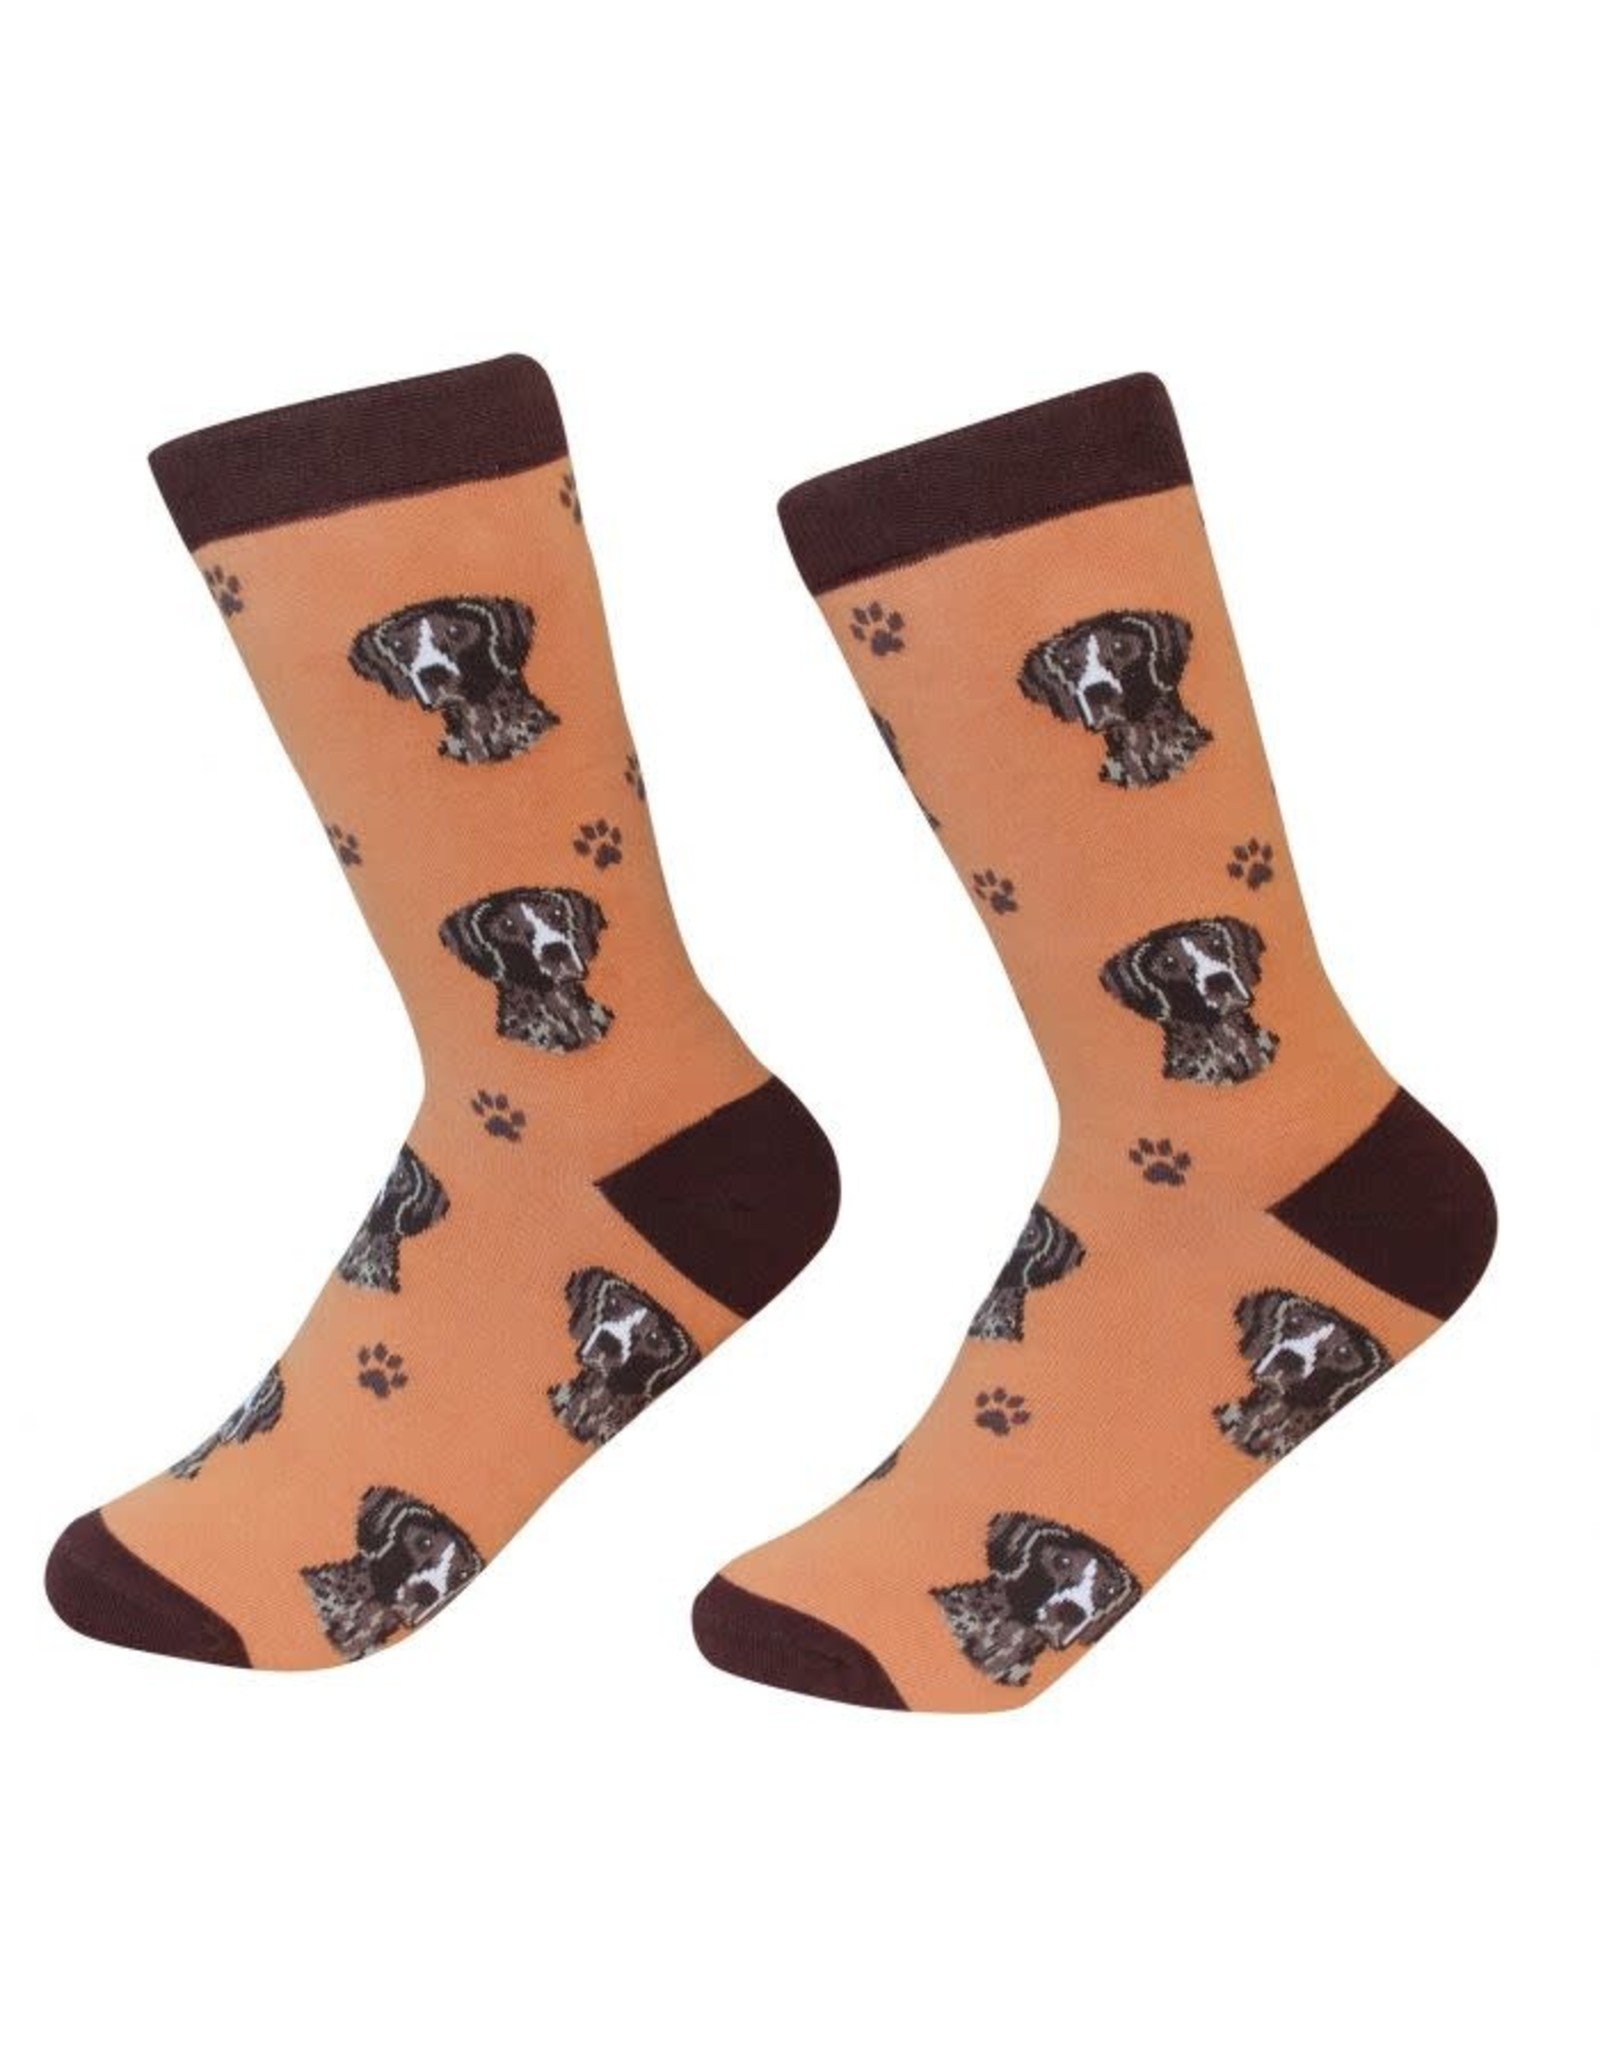 E and S GERMAN SHORTHAIRED POINTER SOCKS